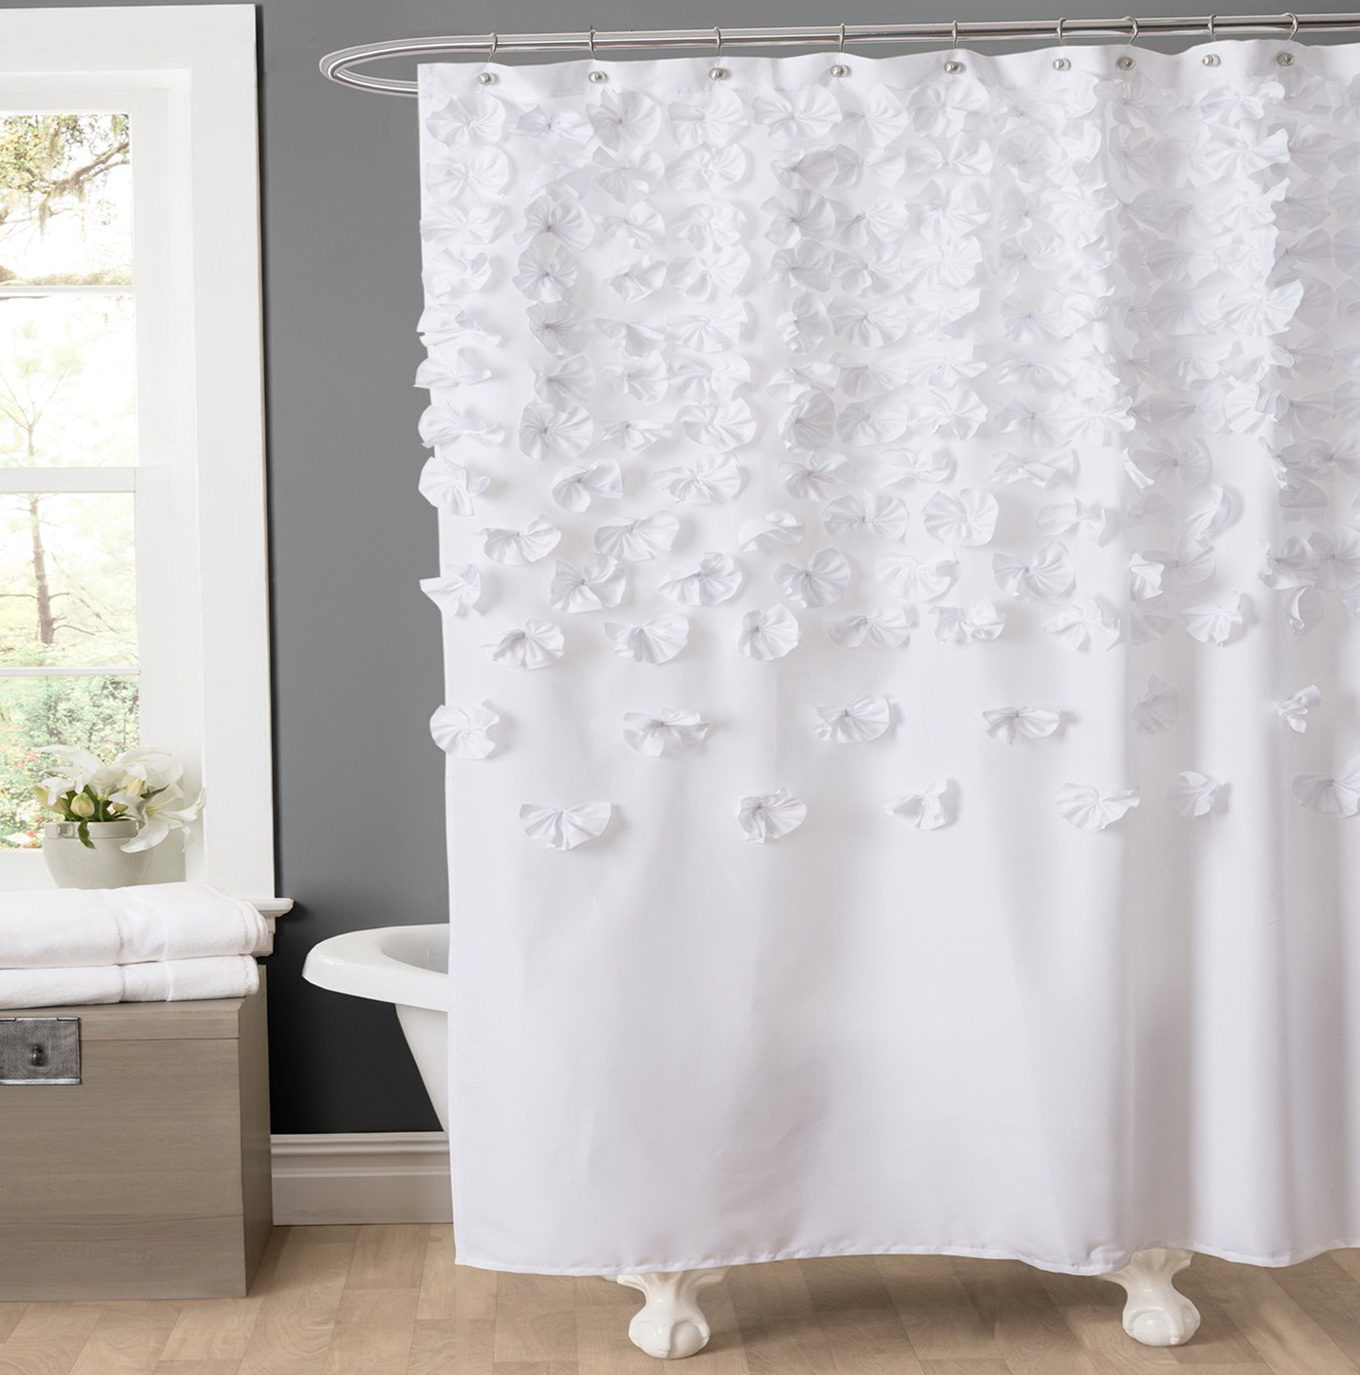 White Shower Curtain With Flowers Home Design Ideas